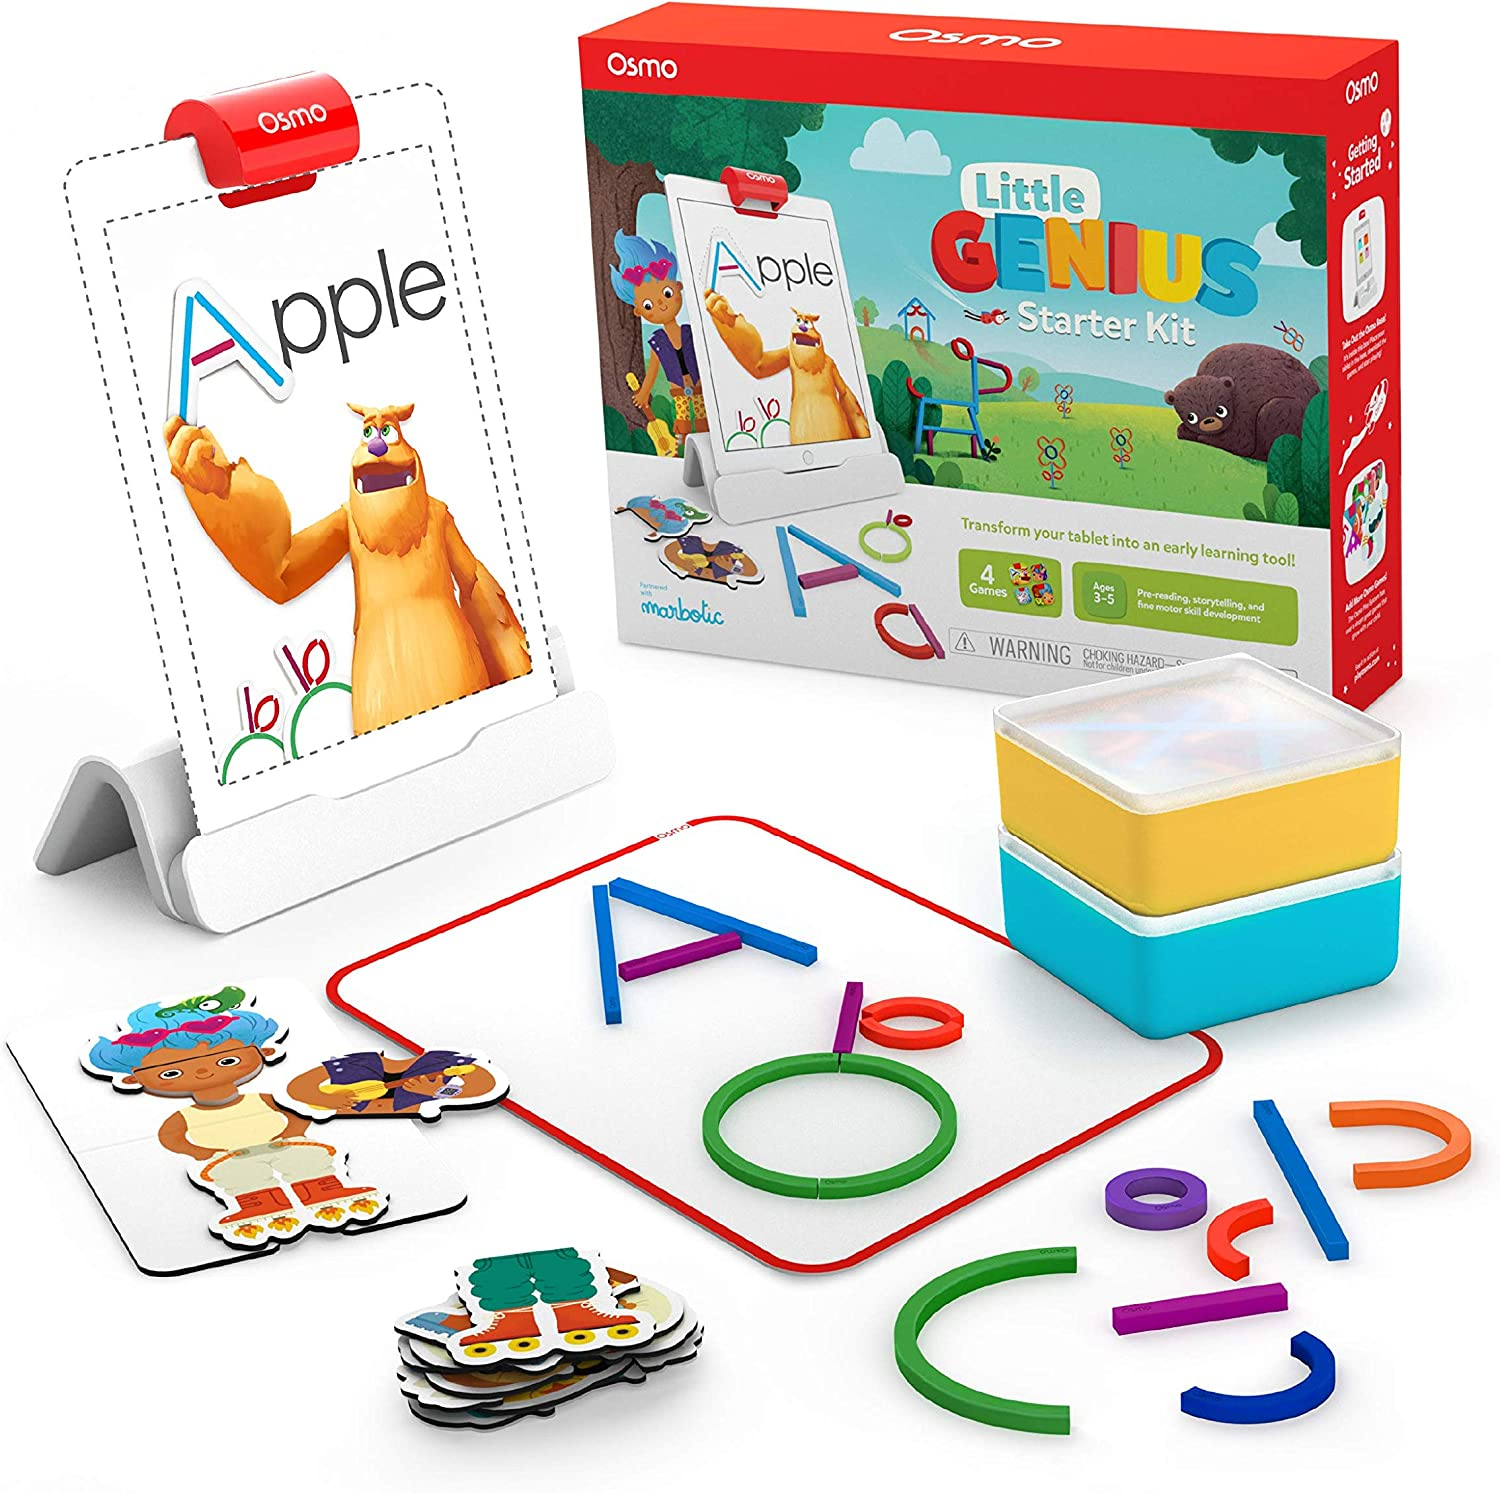 Osmo Little Genius Starter Kit for iPad-4 Hands-On Learning Games-Preschool Ages-Problem Solving, Creativity iniciación Juegos de Aprendizaje prácticos (Tangible Play, Inc. 901-00010)